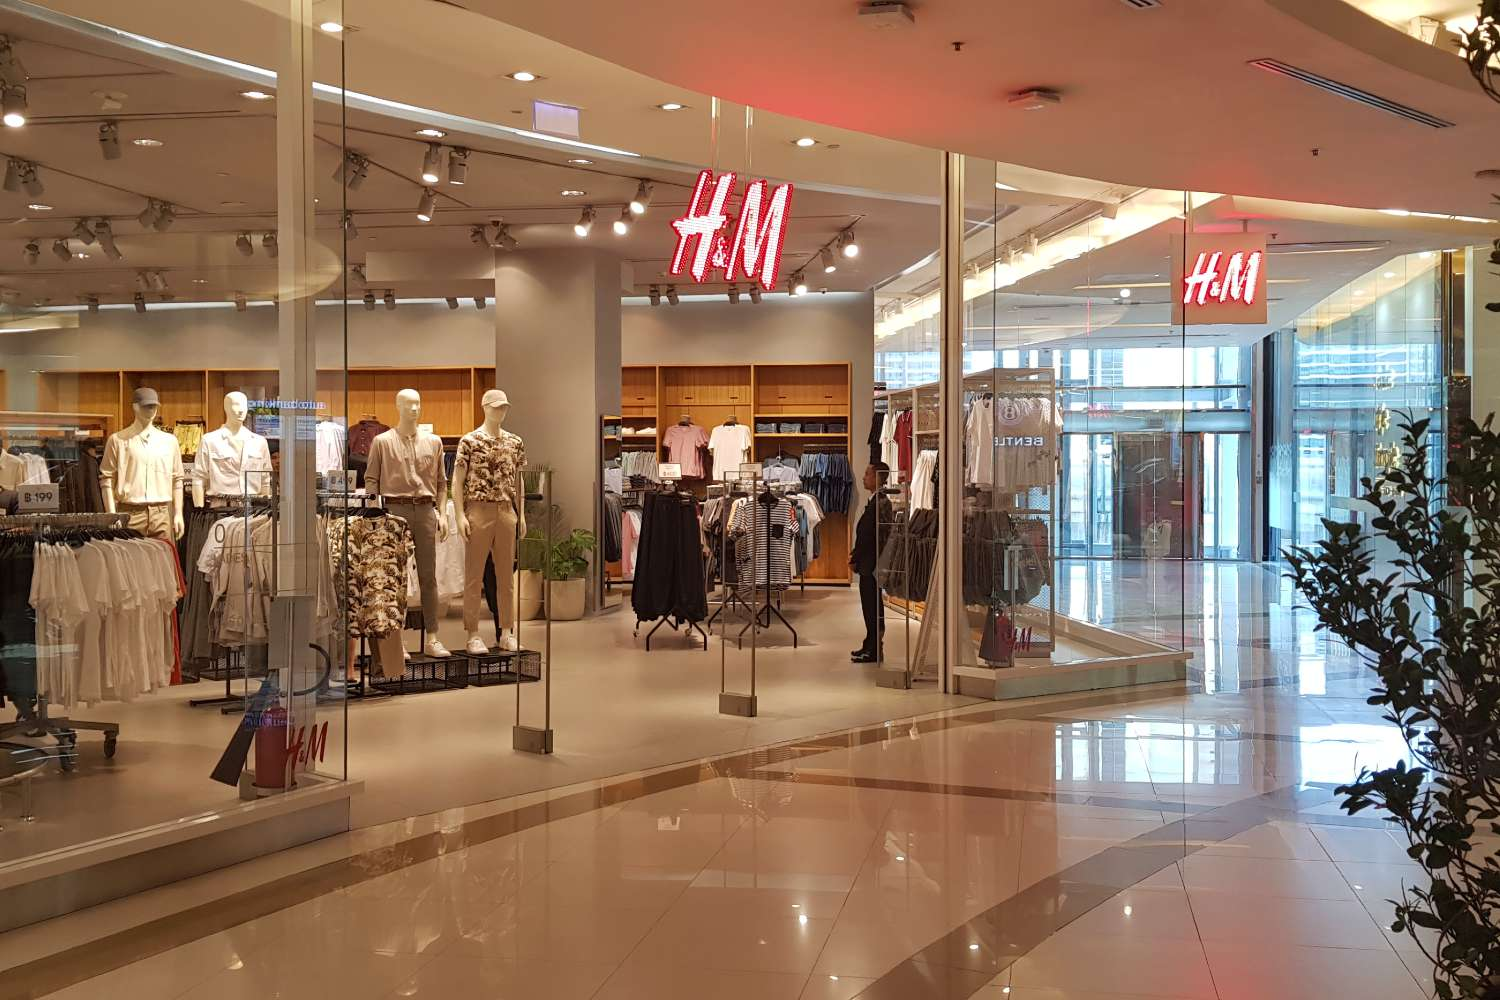 An H&M store in Siam Paragon shopping mall Bangkok